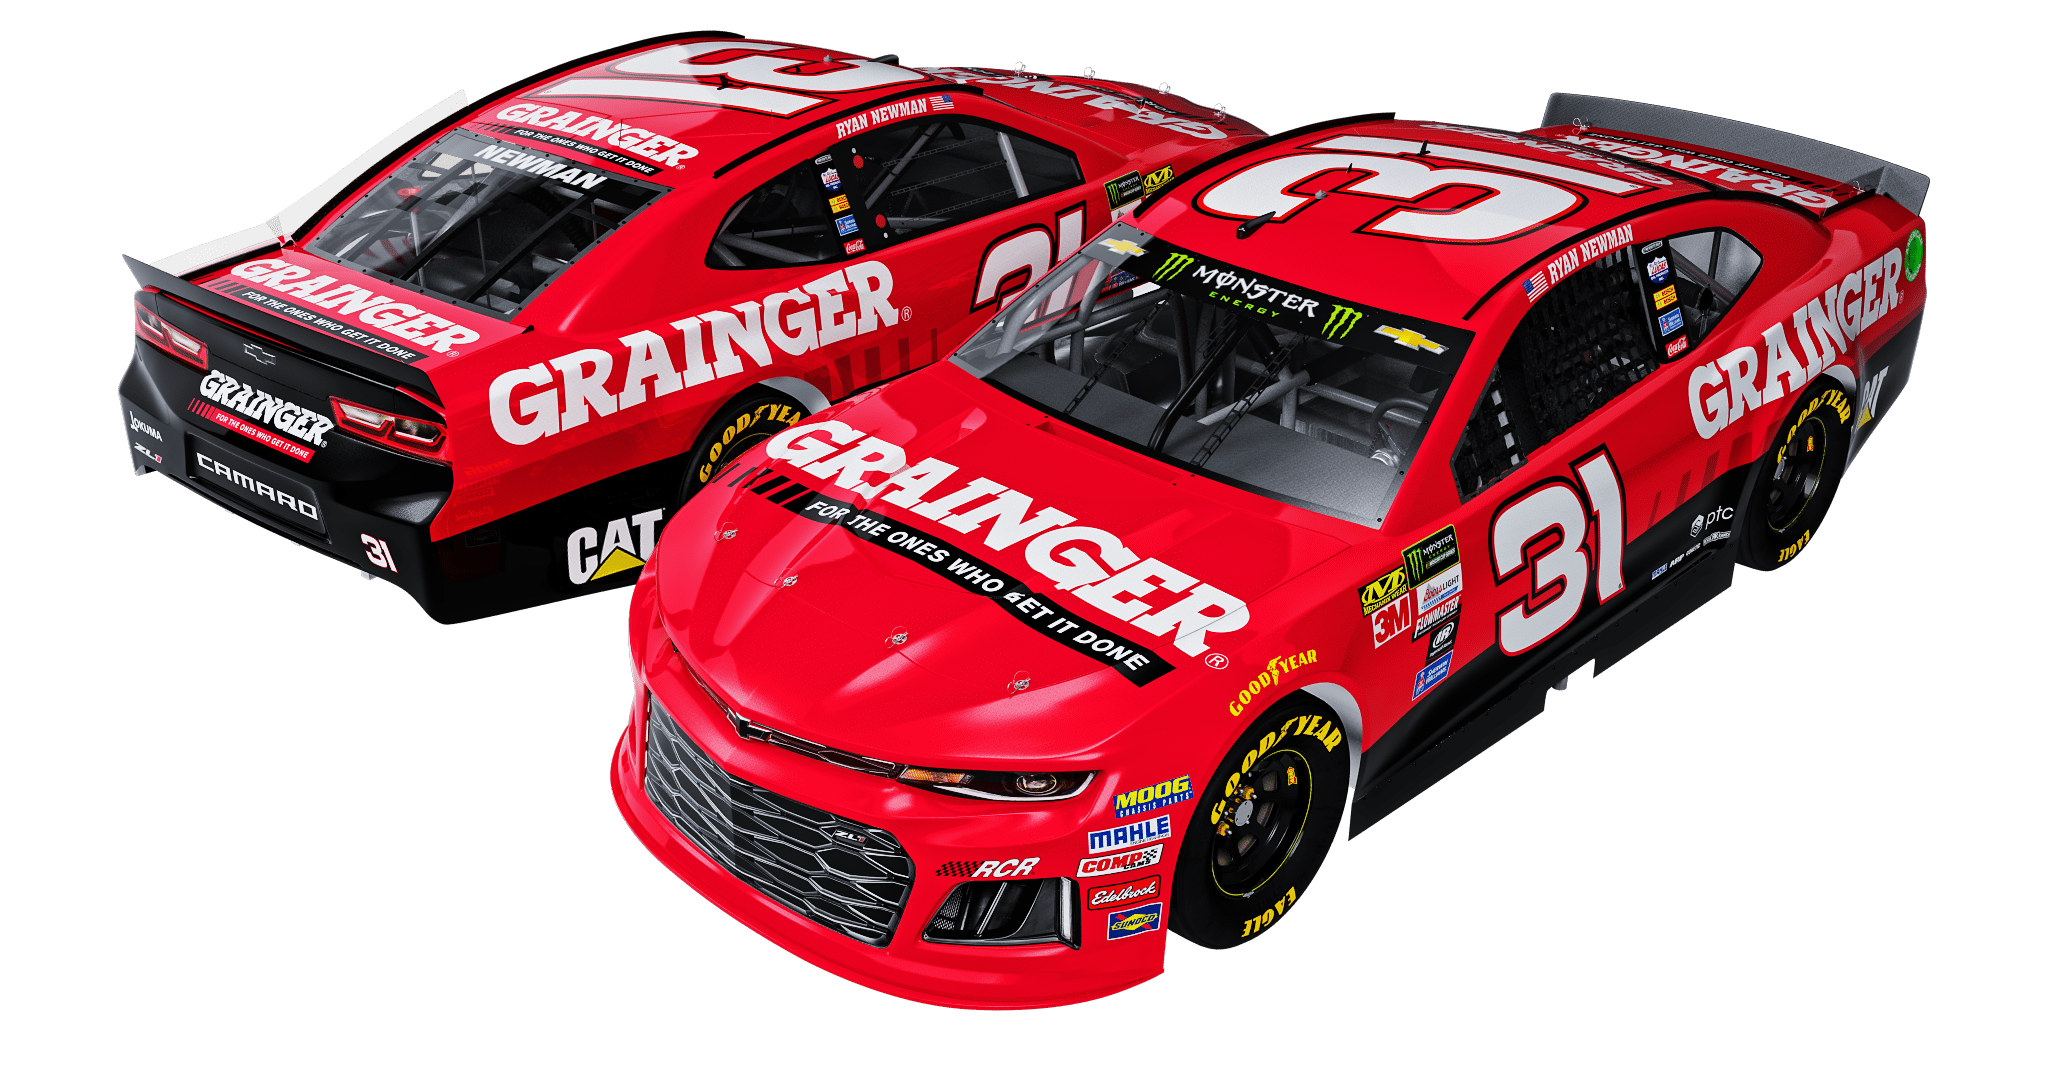 Ryan Newman 2018 No. 31 Grainger Chevrolet 1:24 Diecast